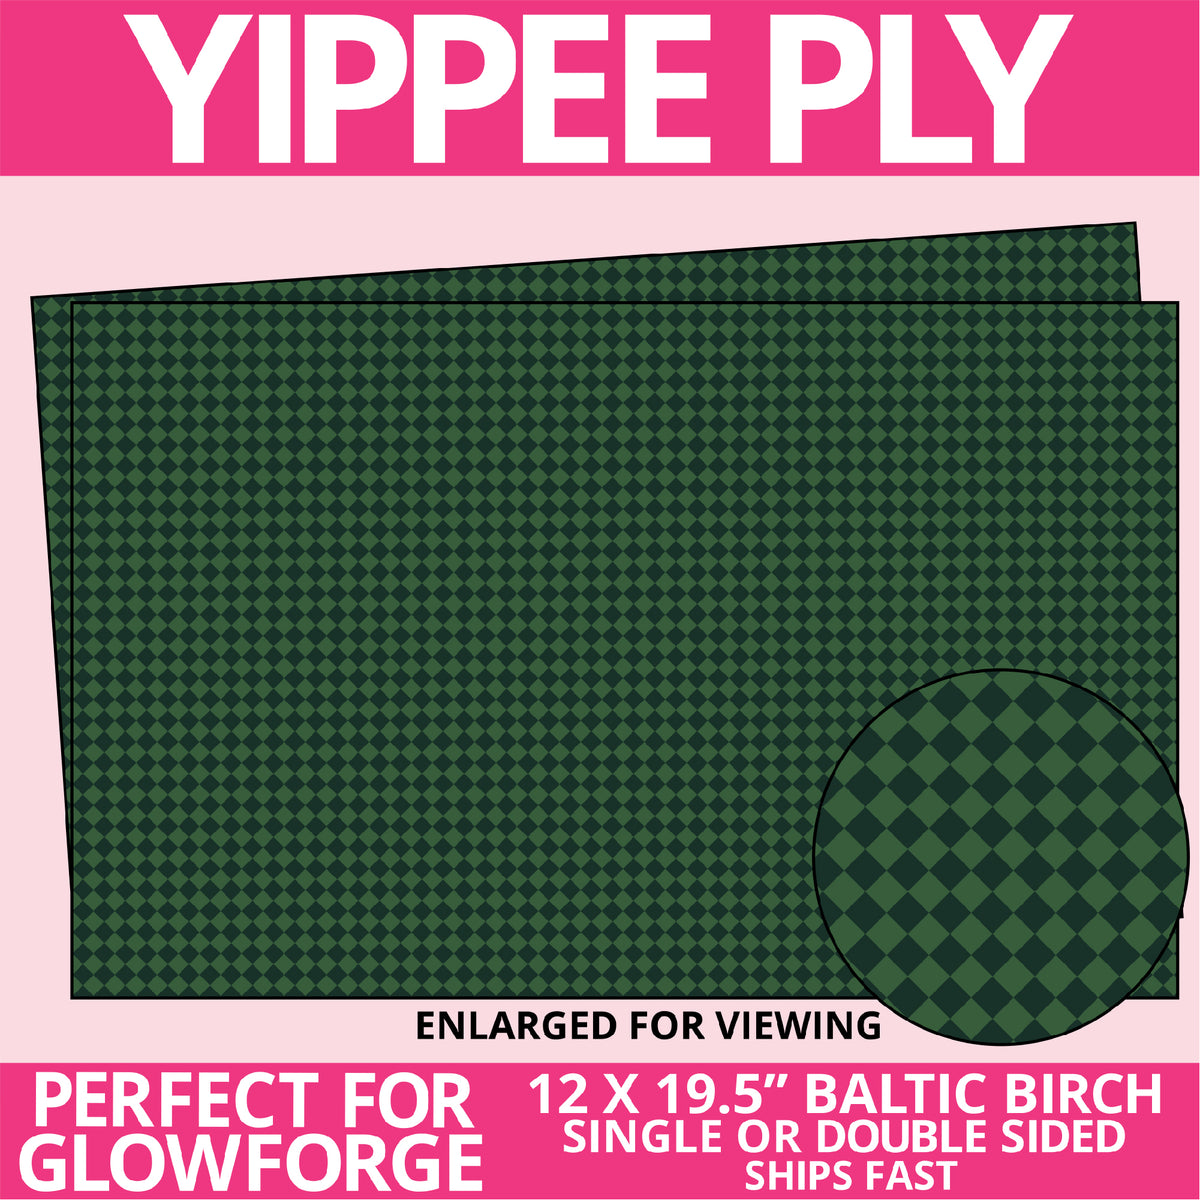 Yippee Ply Bagpipe Loving Pattern on Birch Plywood 1030